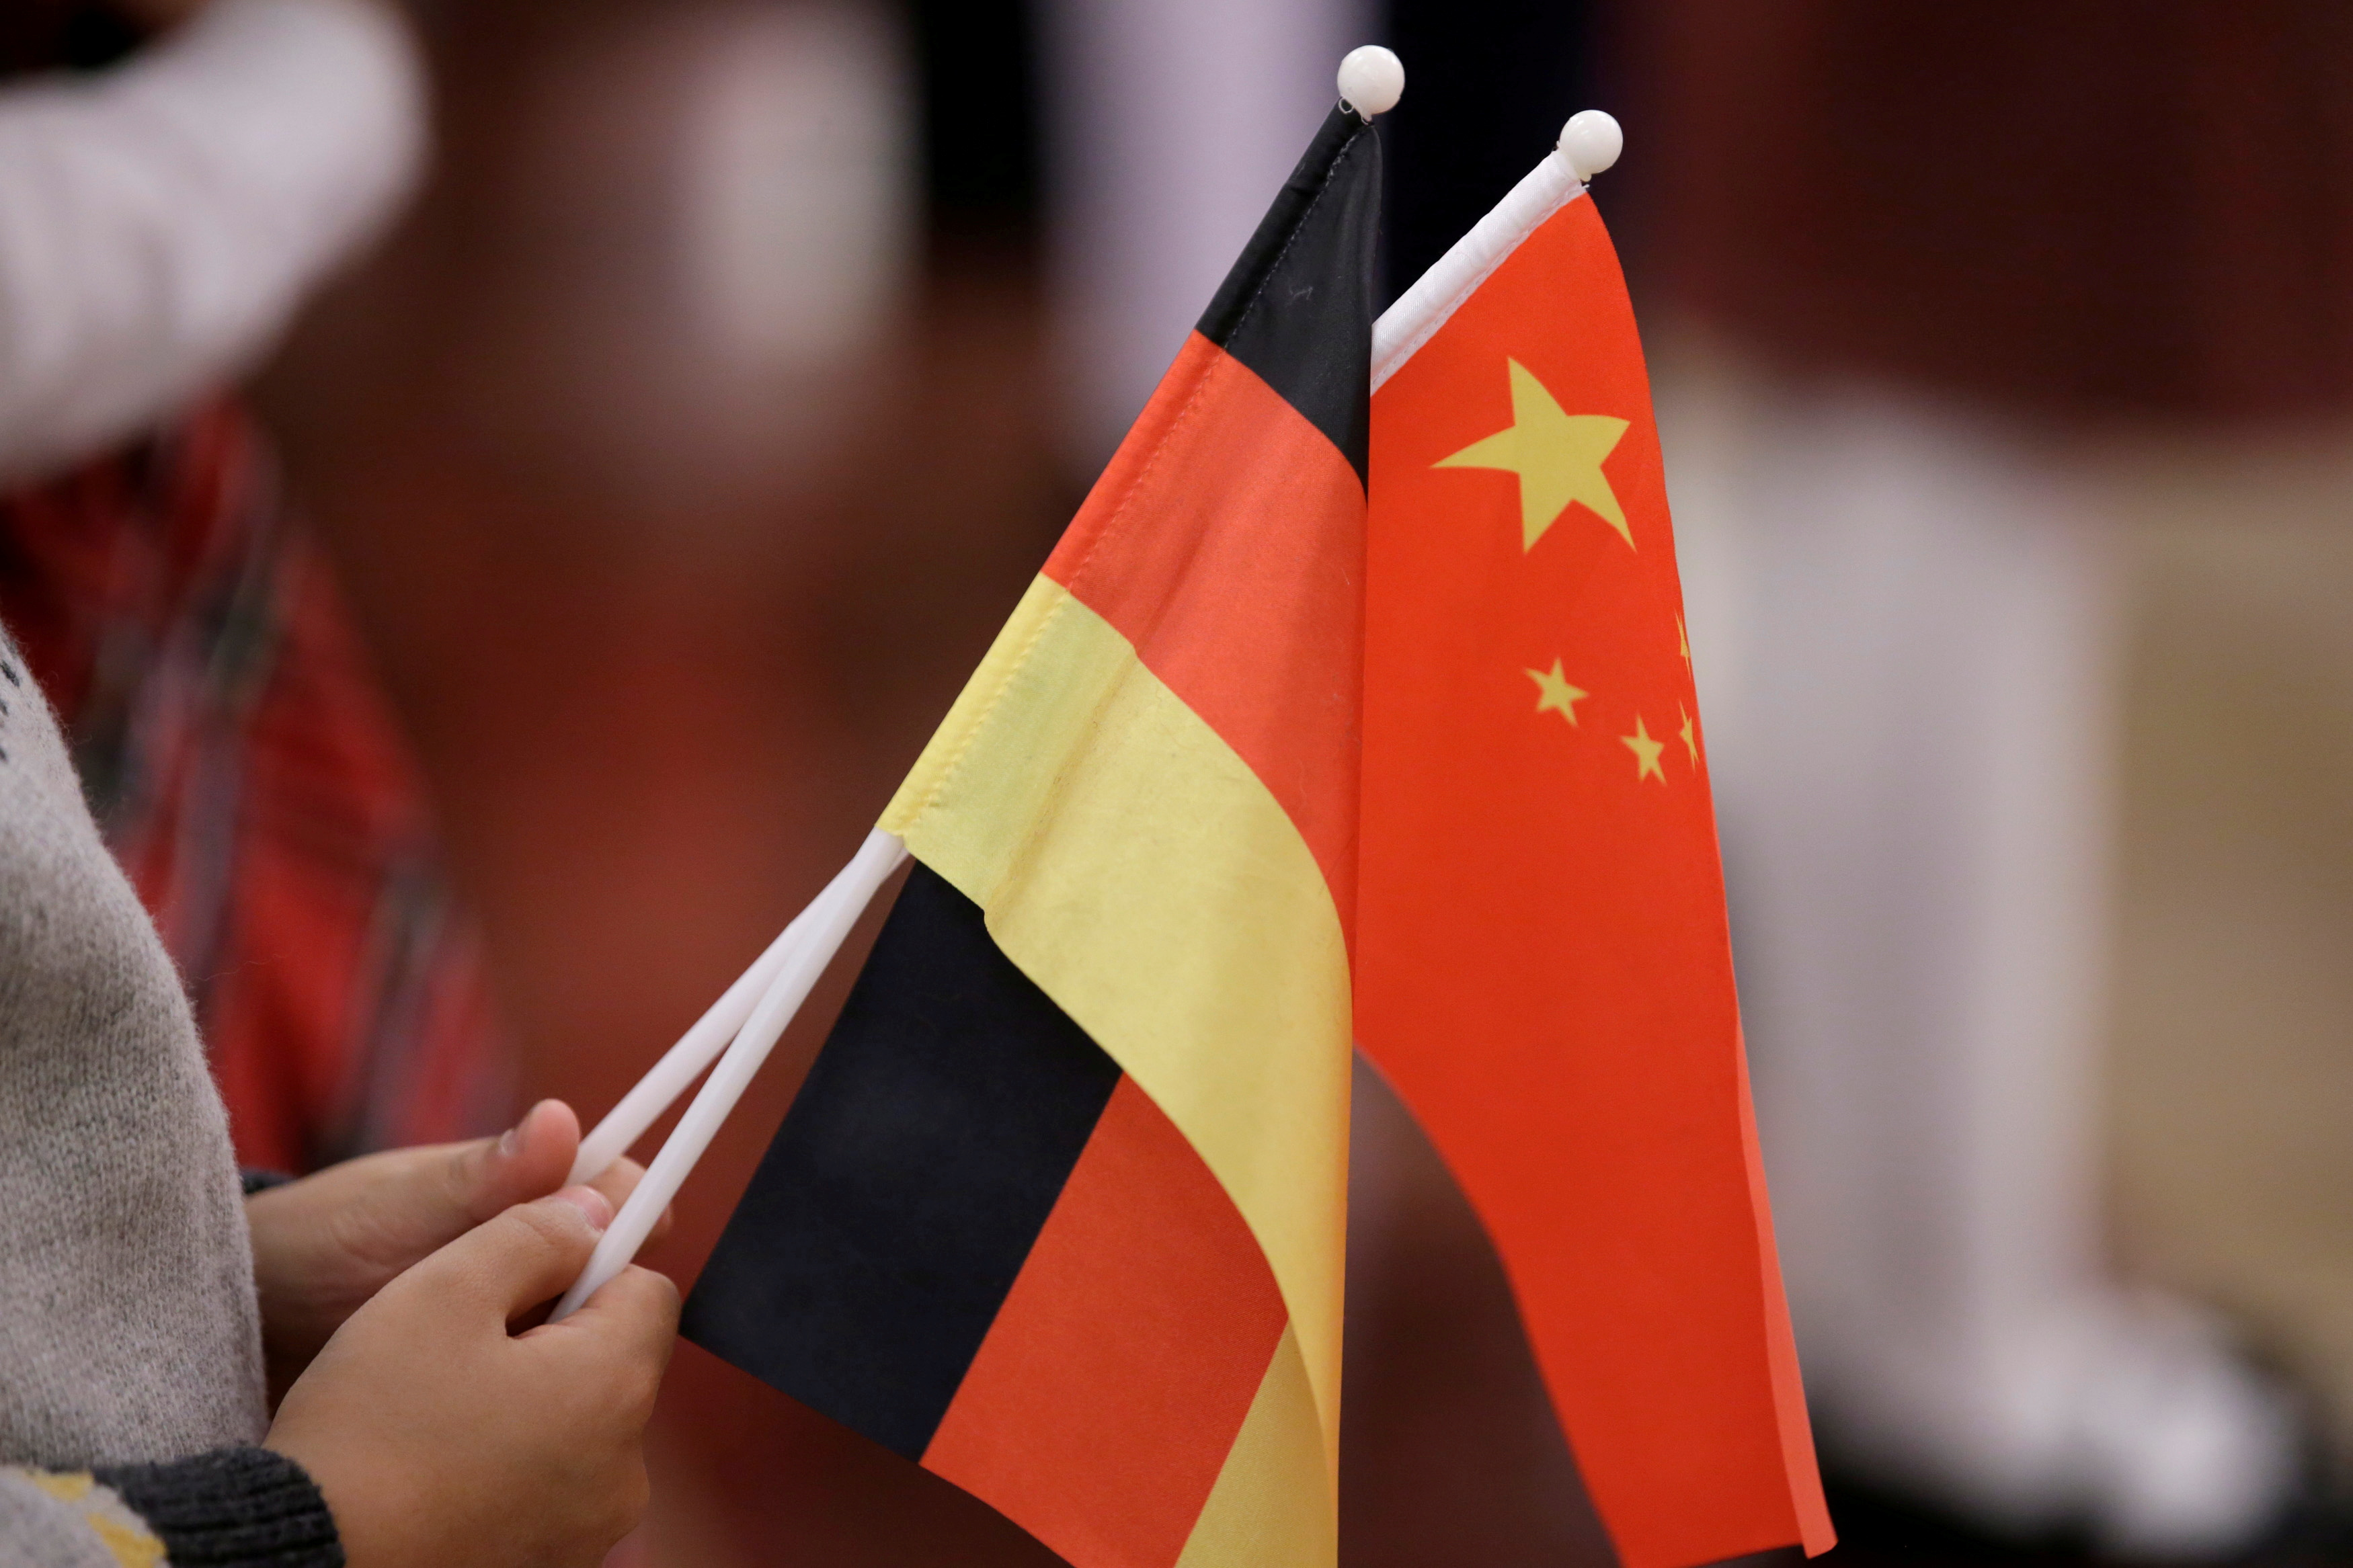 A student holds flags of China and Germany before a welcome ceremony hosted by China's President Xi Jinping for German President Frank-Walter Steinmeier at the Great Hall of the People in Beijing, China December 10, 2018. REUTERS/Jason Lee/File Photo